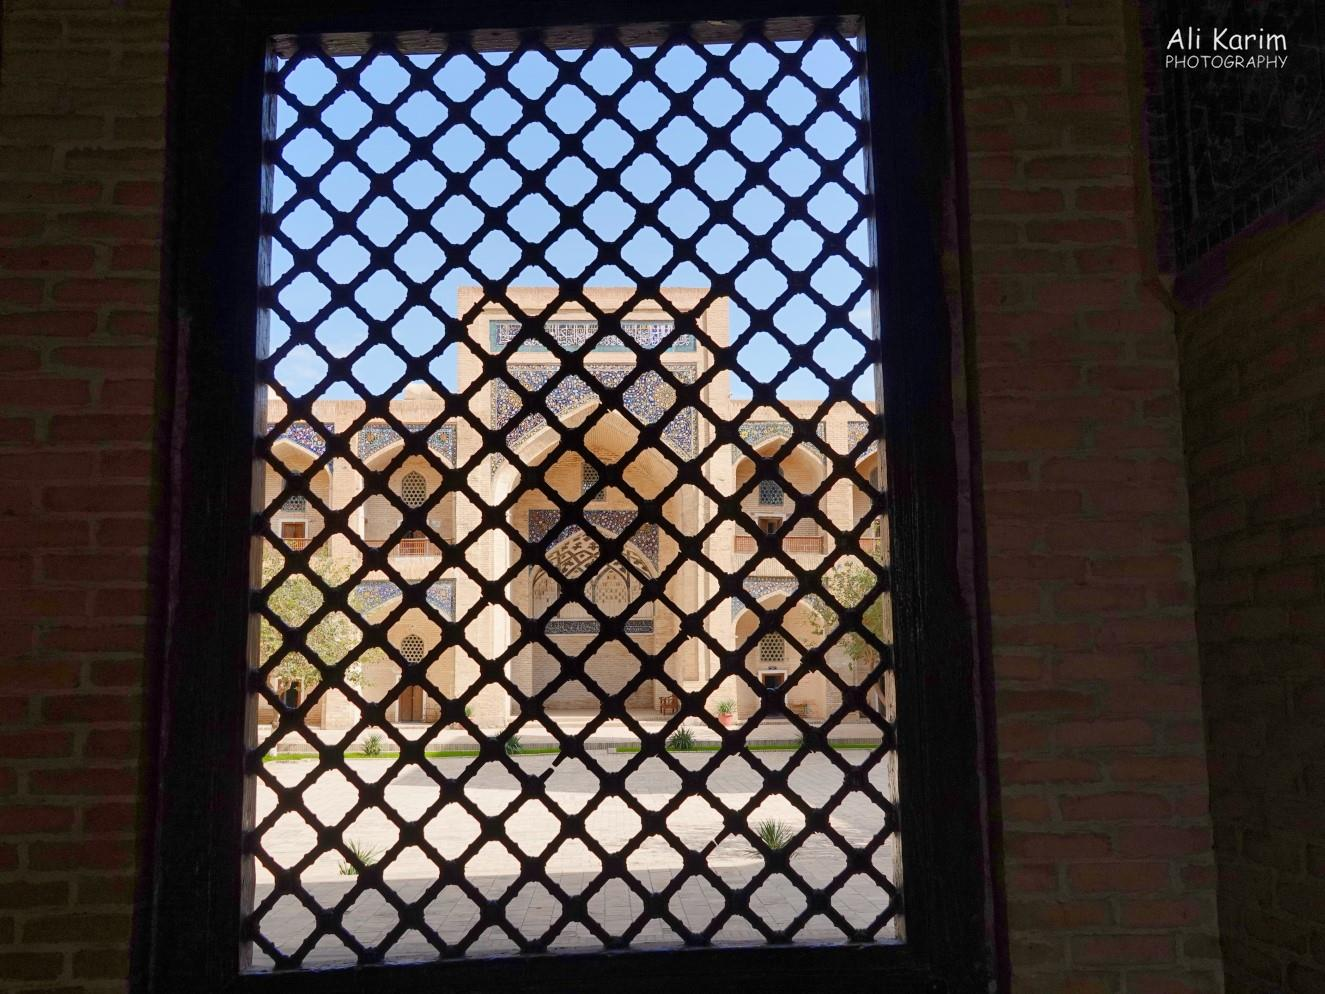 Bukhara, Oct 2019, Latticed view of the mosque from the mausoleum inside the madrassah